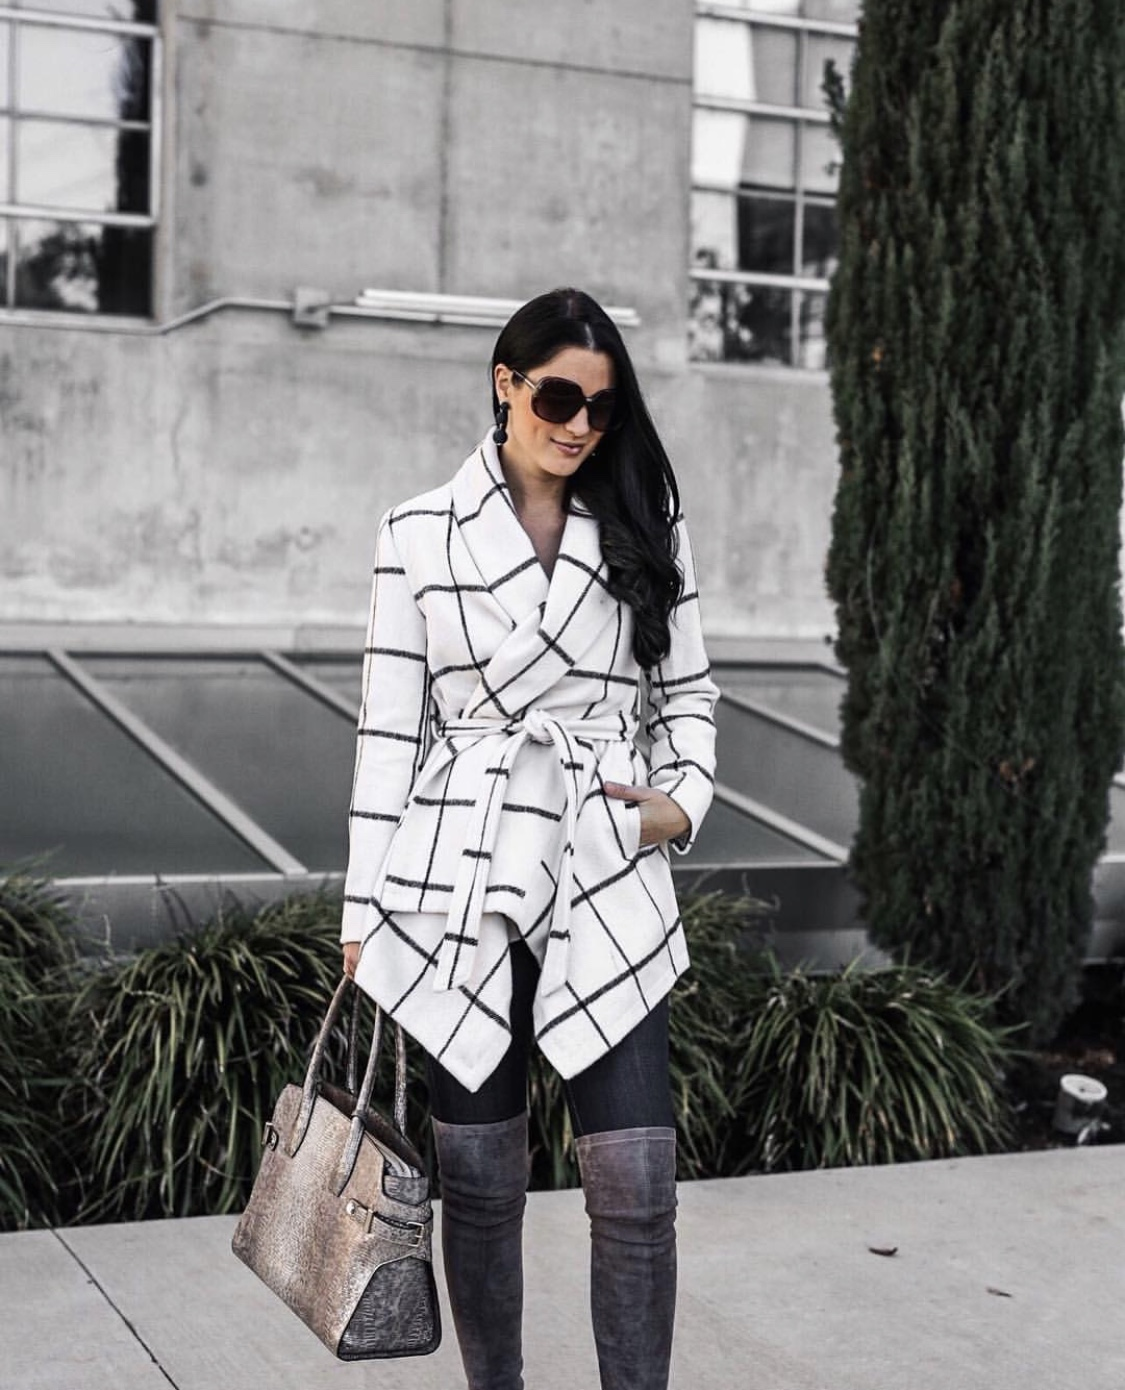 December Instagram Fashion Roundup | winter fashion tips | winter outfit ideas | winter style tips | what to wear for winter | cool weather fashion | fashion for winter | style tips for winter | outfit ideas for winter || Dressed to Kill #winterstyle #fashion #fashionblogger - Best of December Looks - Instagram Fashion Roundup by popular Austin fashion blogger Dressed to Kill